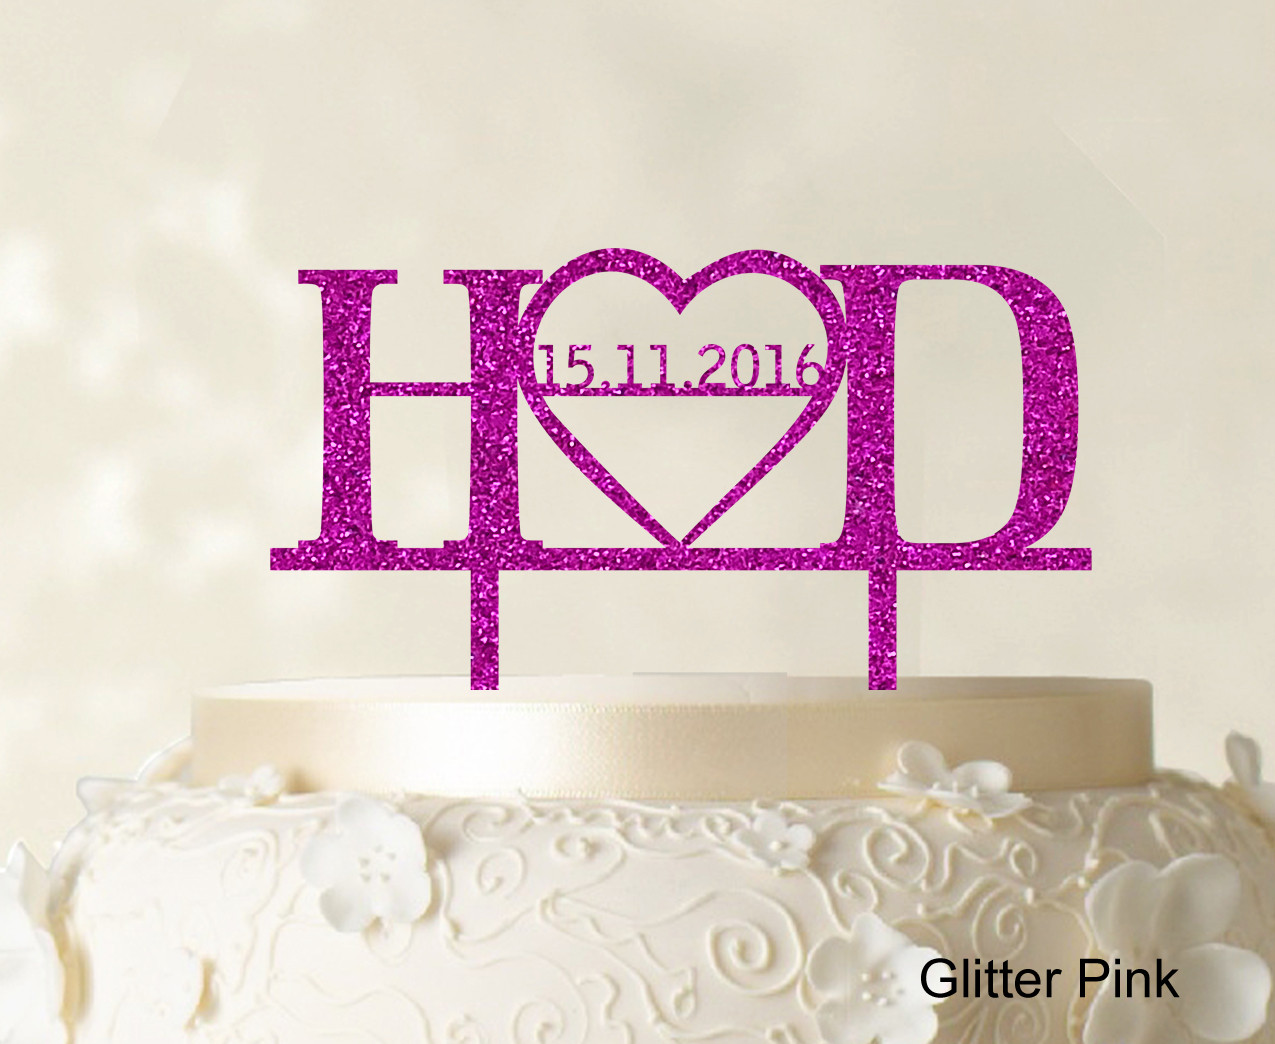 Personalized Cake Toppers For Wedding Cakes  Monogram Personalized Cake Topper Custom Wedding Cake